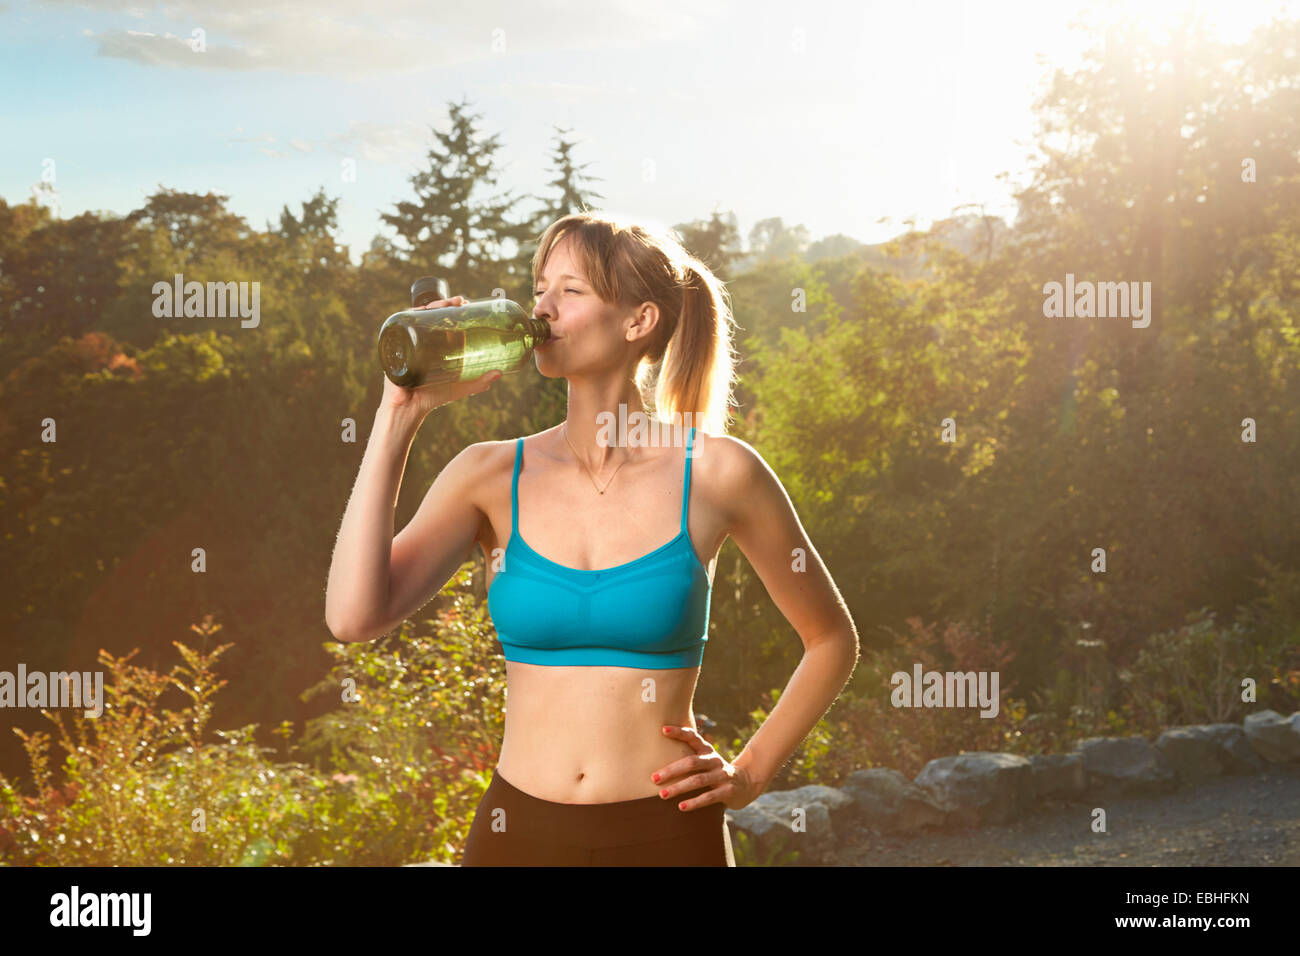 Mid adult female runner en prenant une pause dans le parc Photo Stock